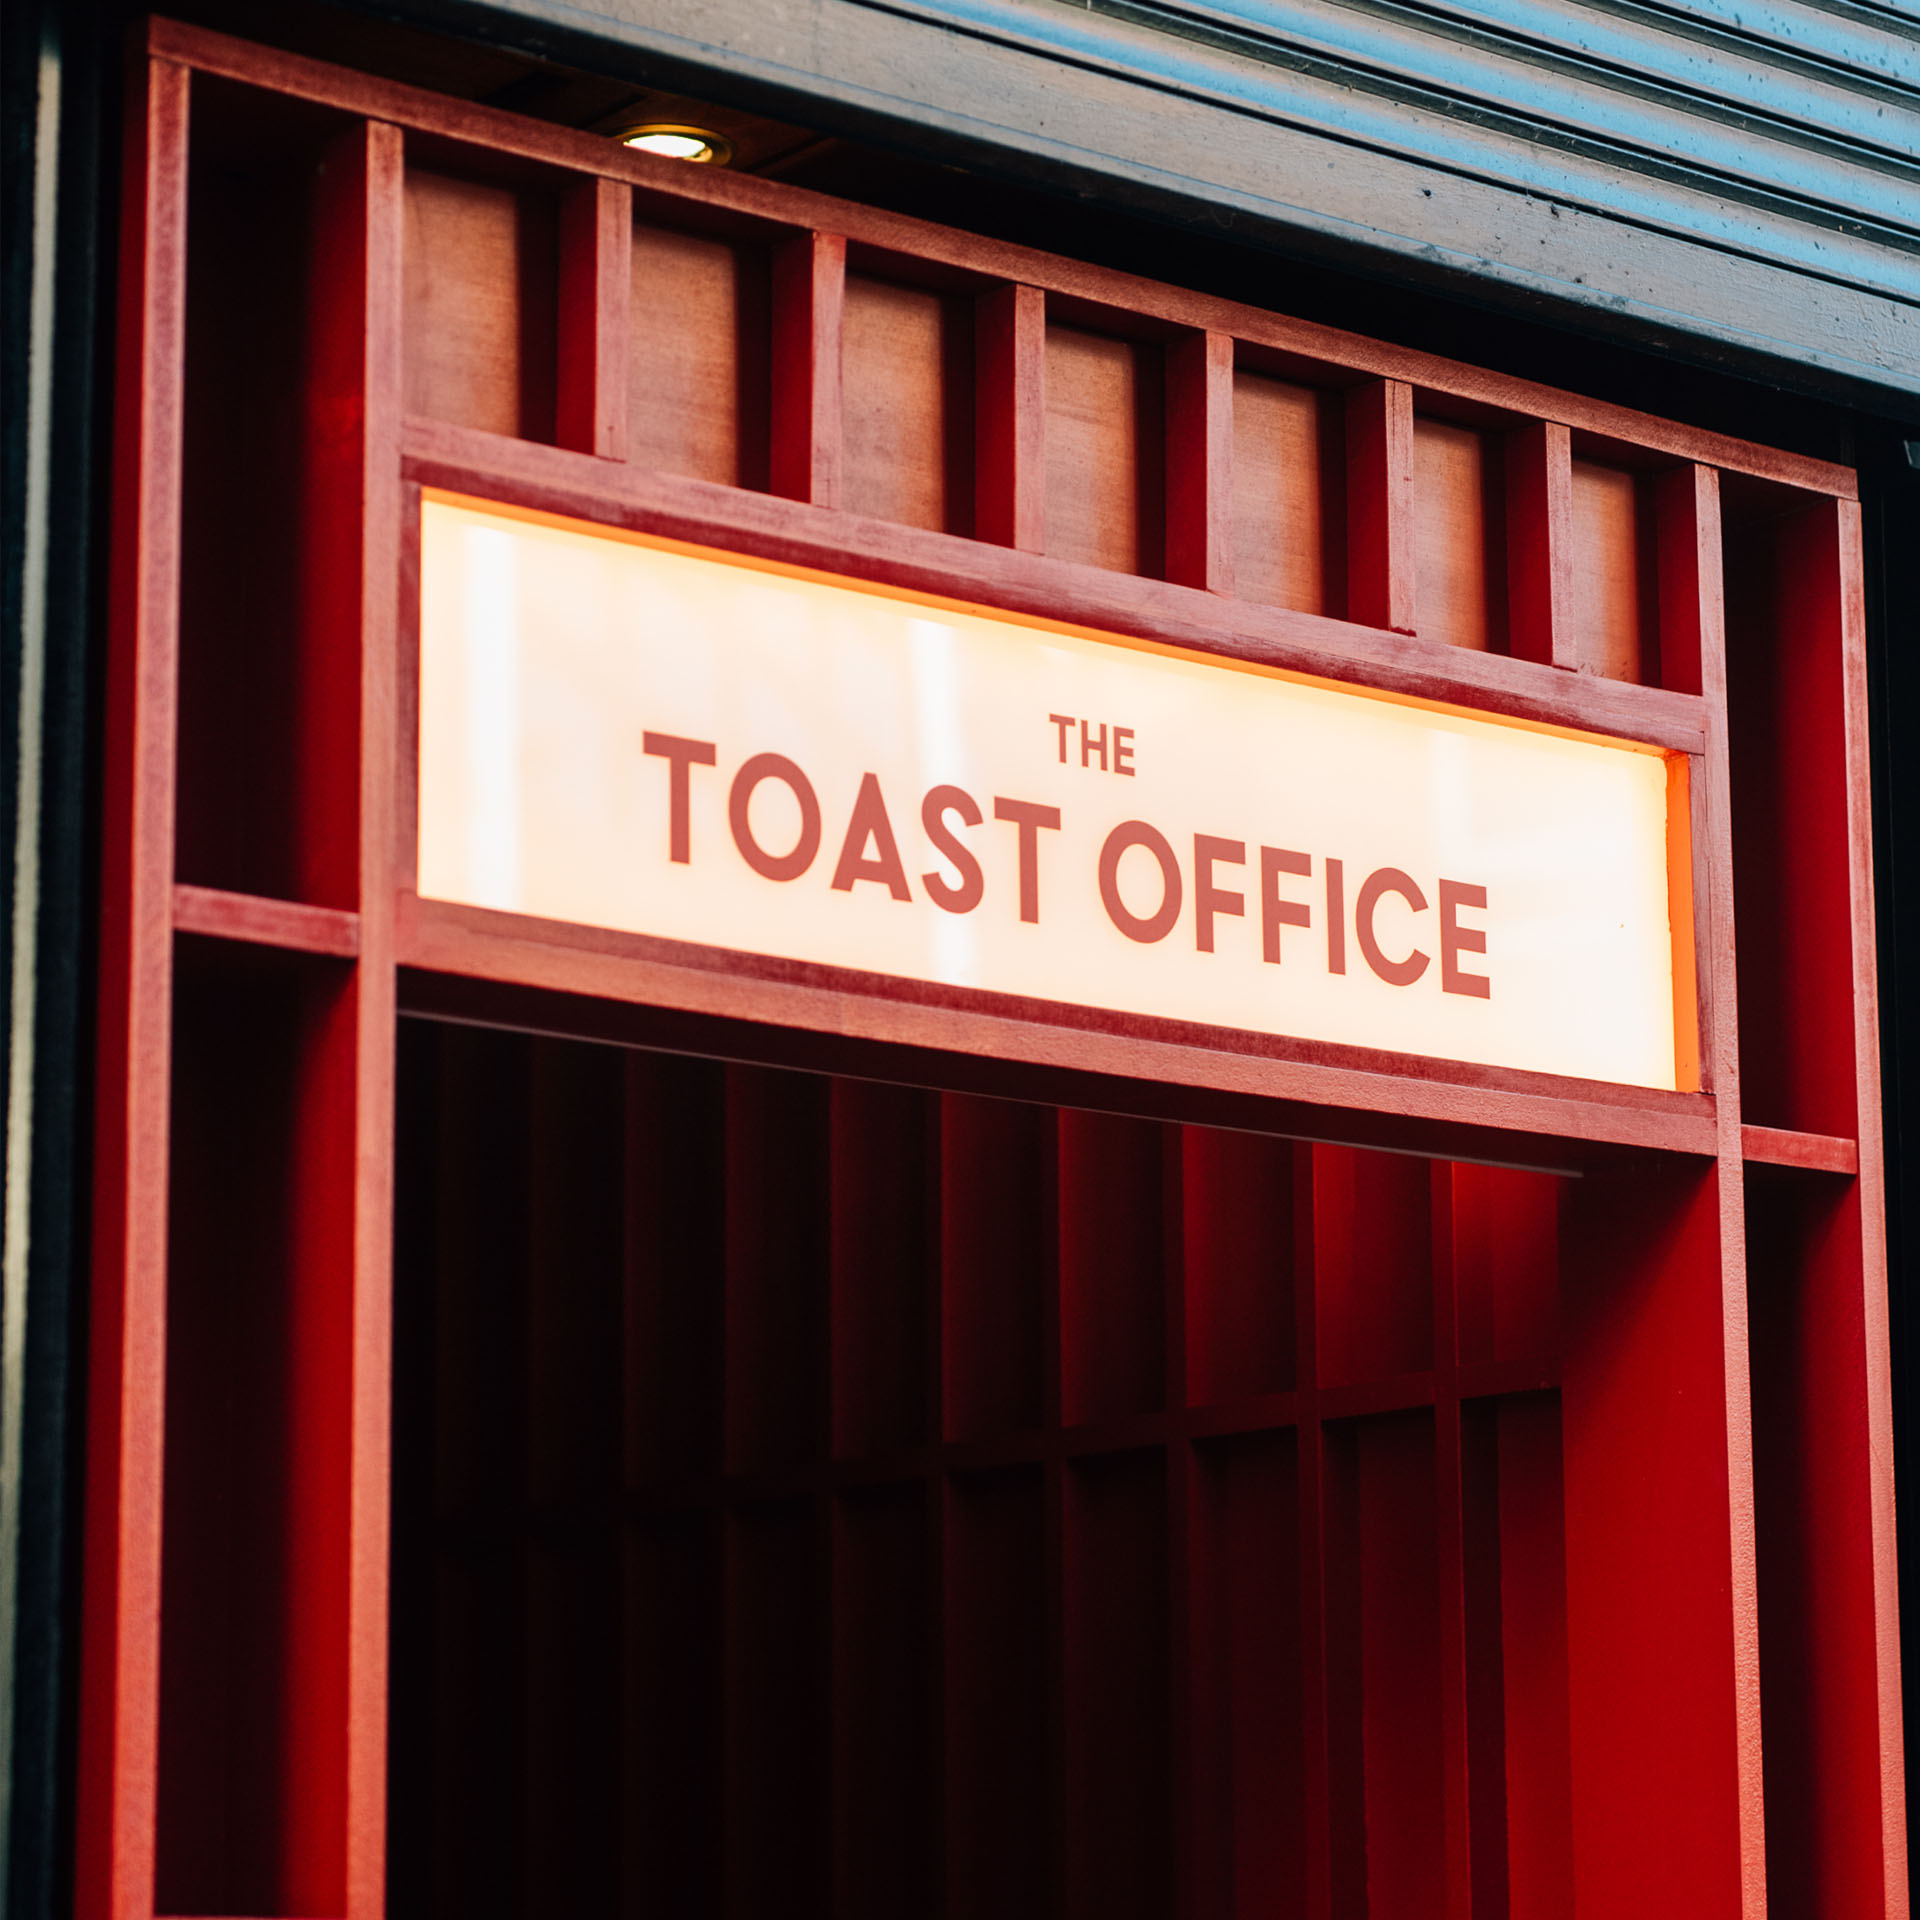 The Toast Office - restaurant branding by Crown Creative